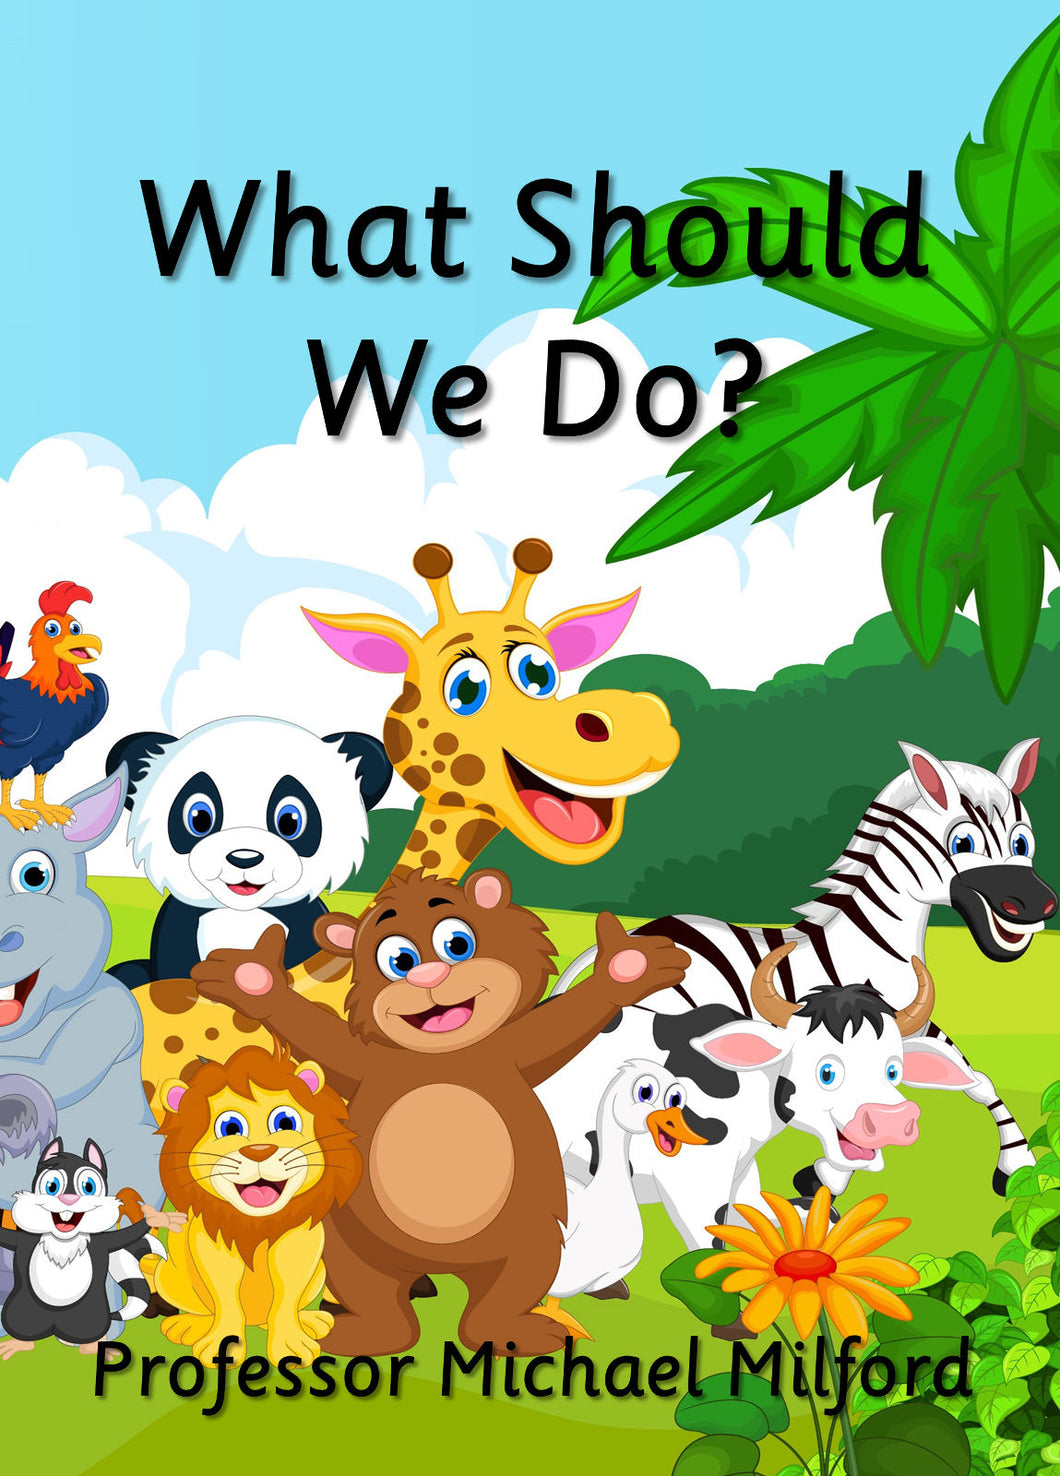 What Should We Do (E-book only)